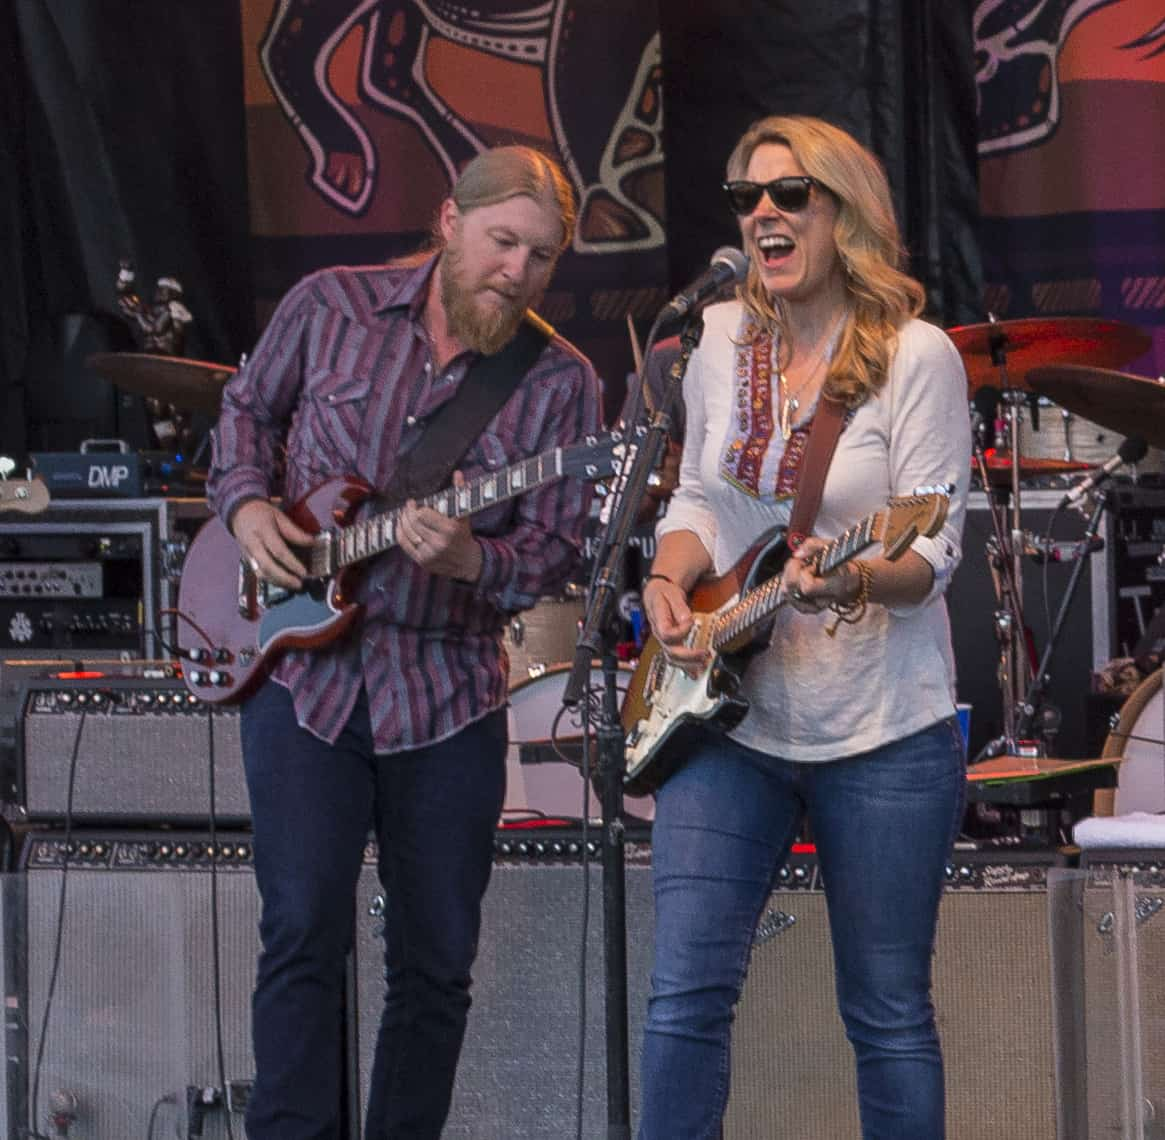 Tedeschi Trucks Band again for good reason